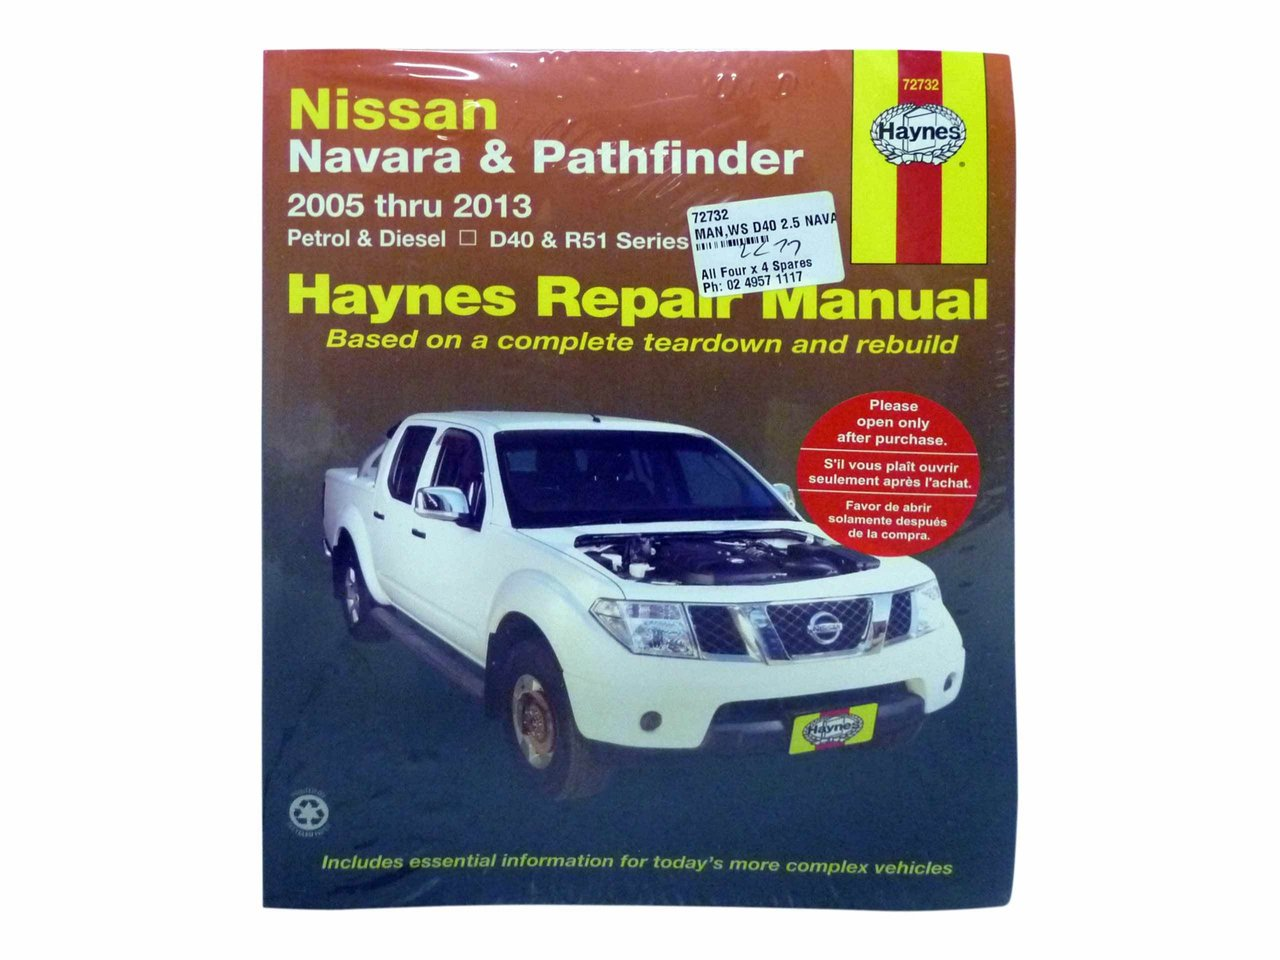 workshop manual for nissan navara d40 and pathfinder r51 4 0 2 5l rh allfourx4 com au nissan pathfinder r51 workshop manual download pathfinder r51 repair manual